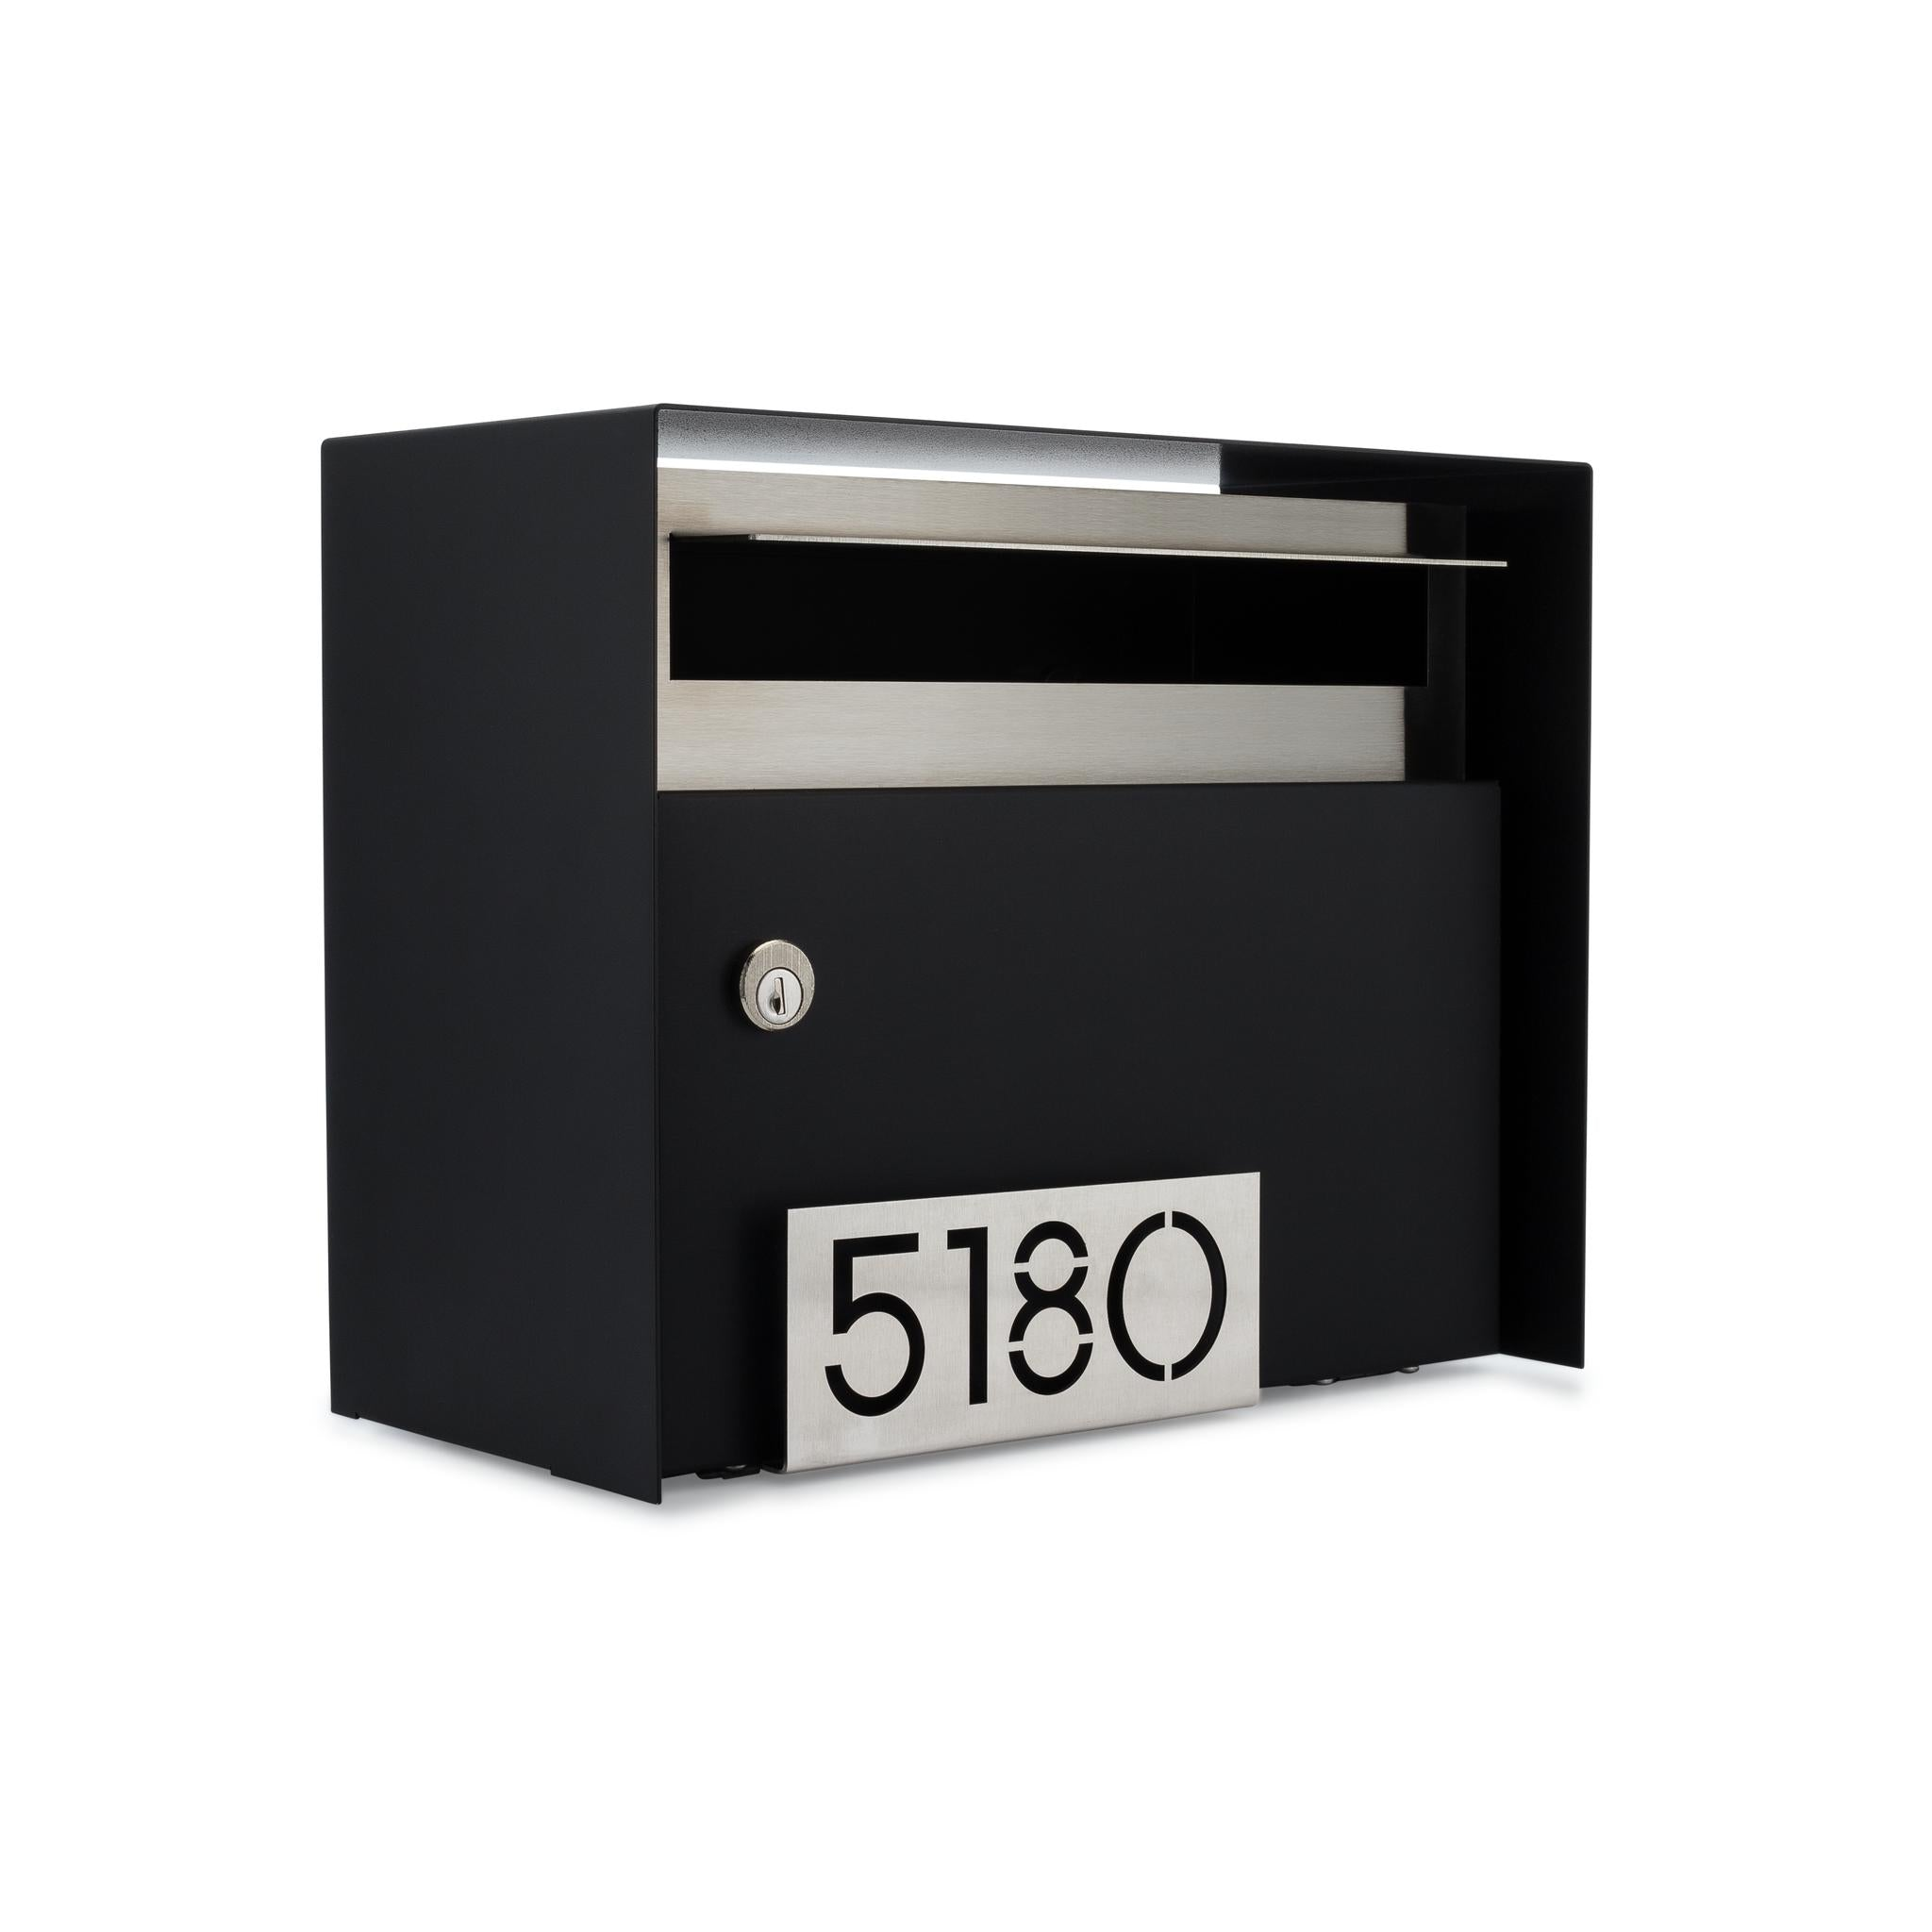 HENRY - WALL MOUNT MAILBOX (ON BACKORDER)